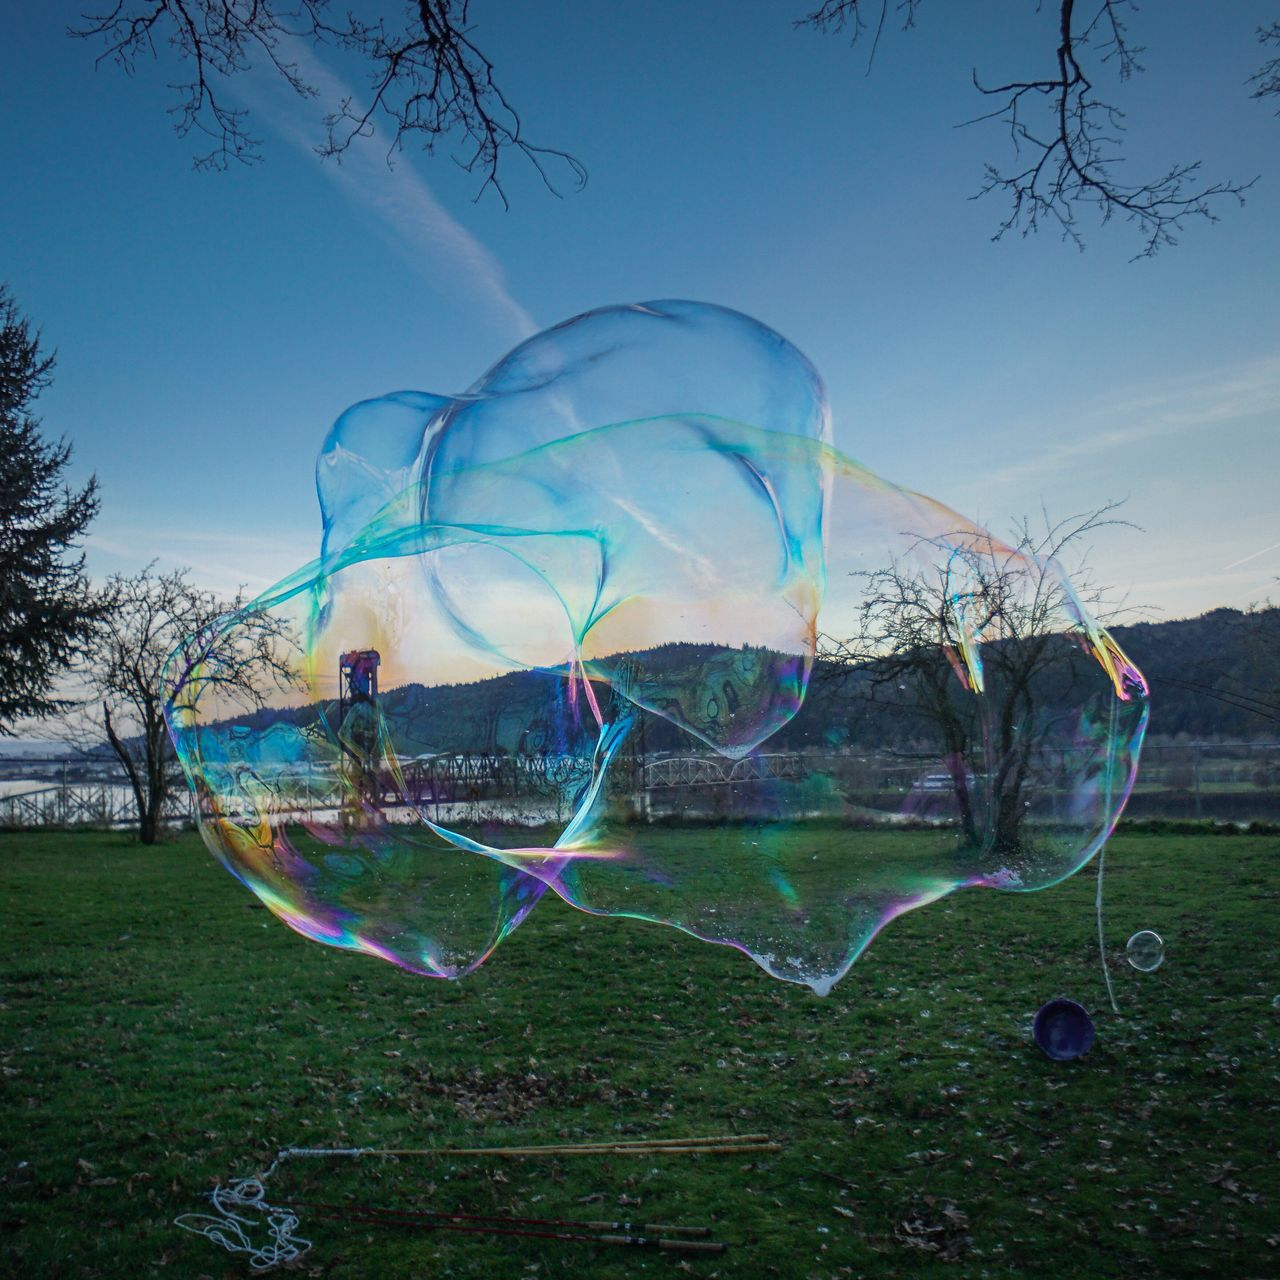 Soap bubbles over field against sky